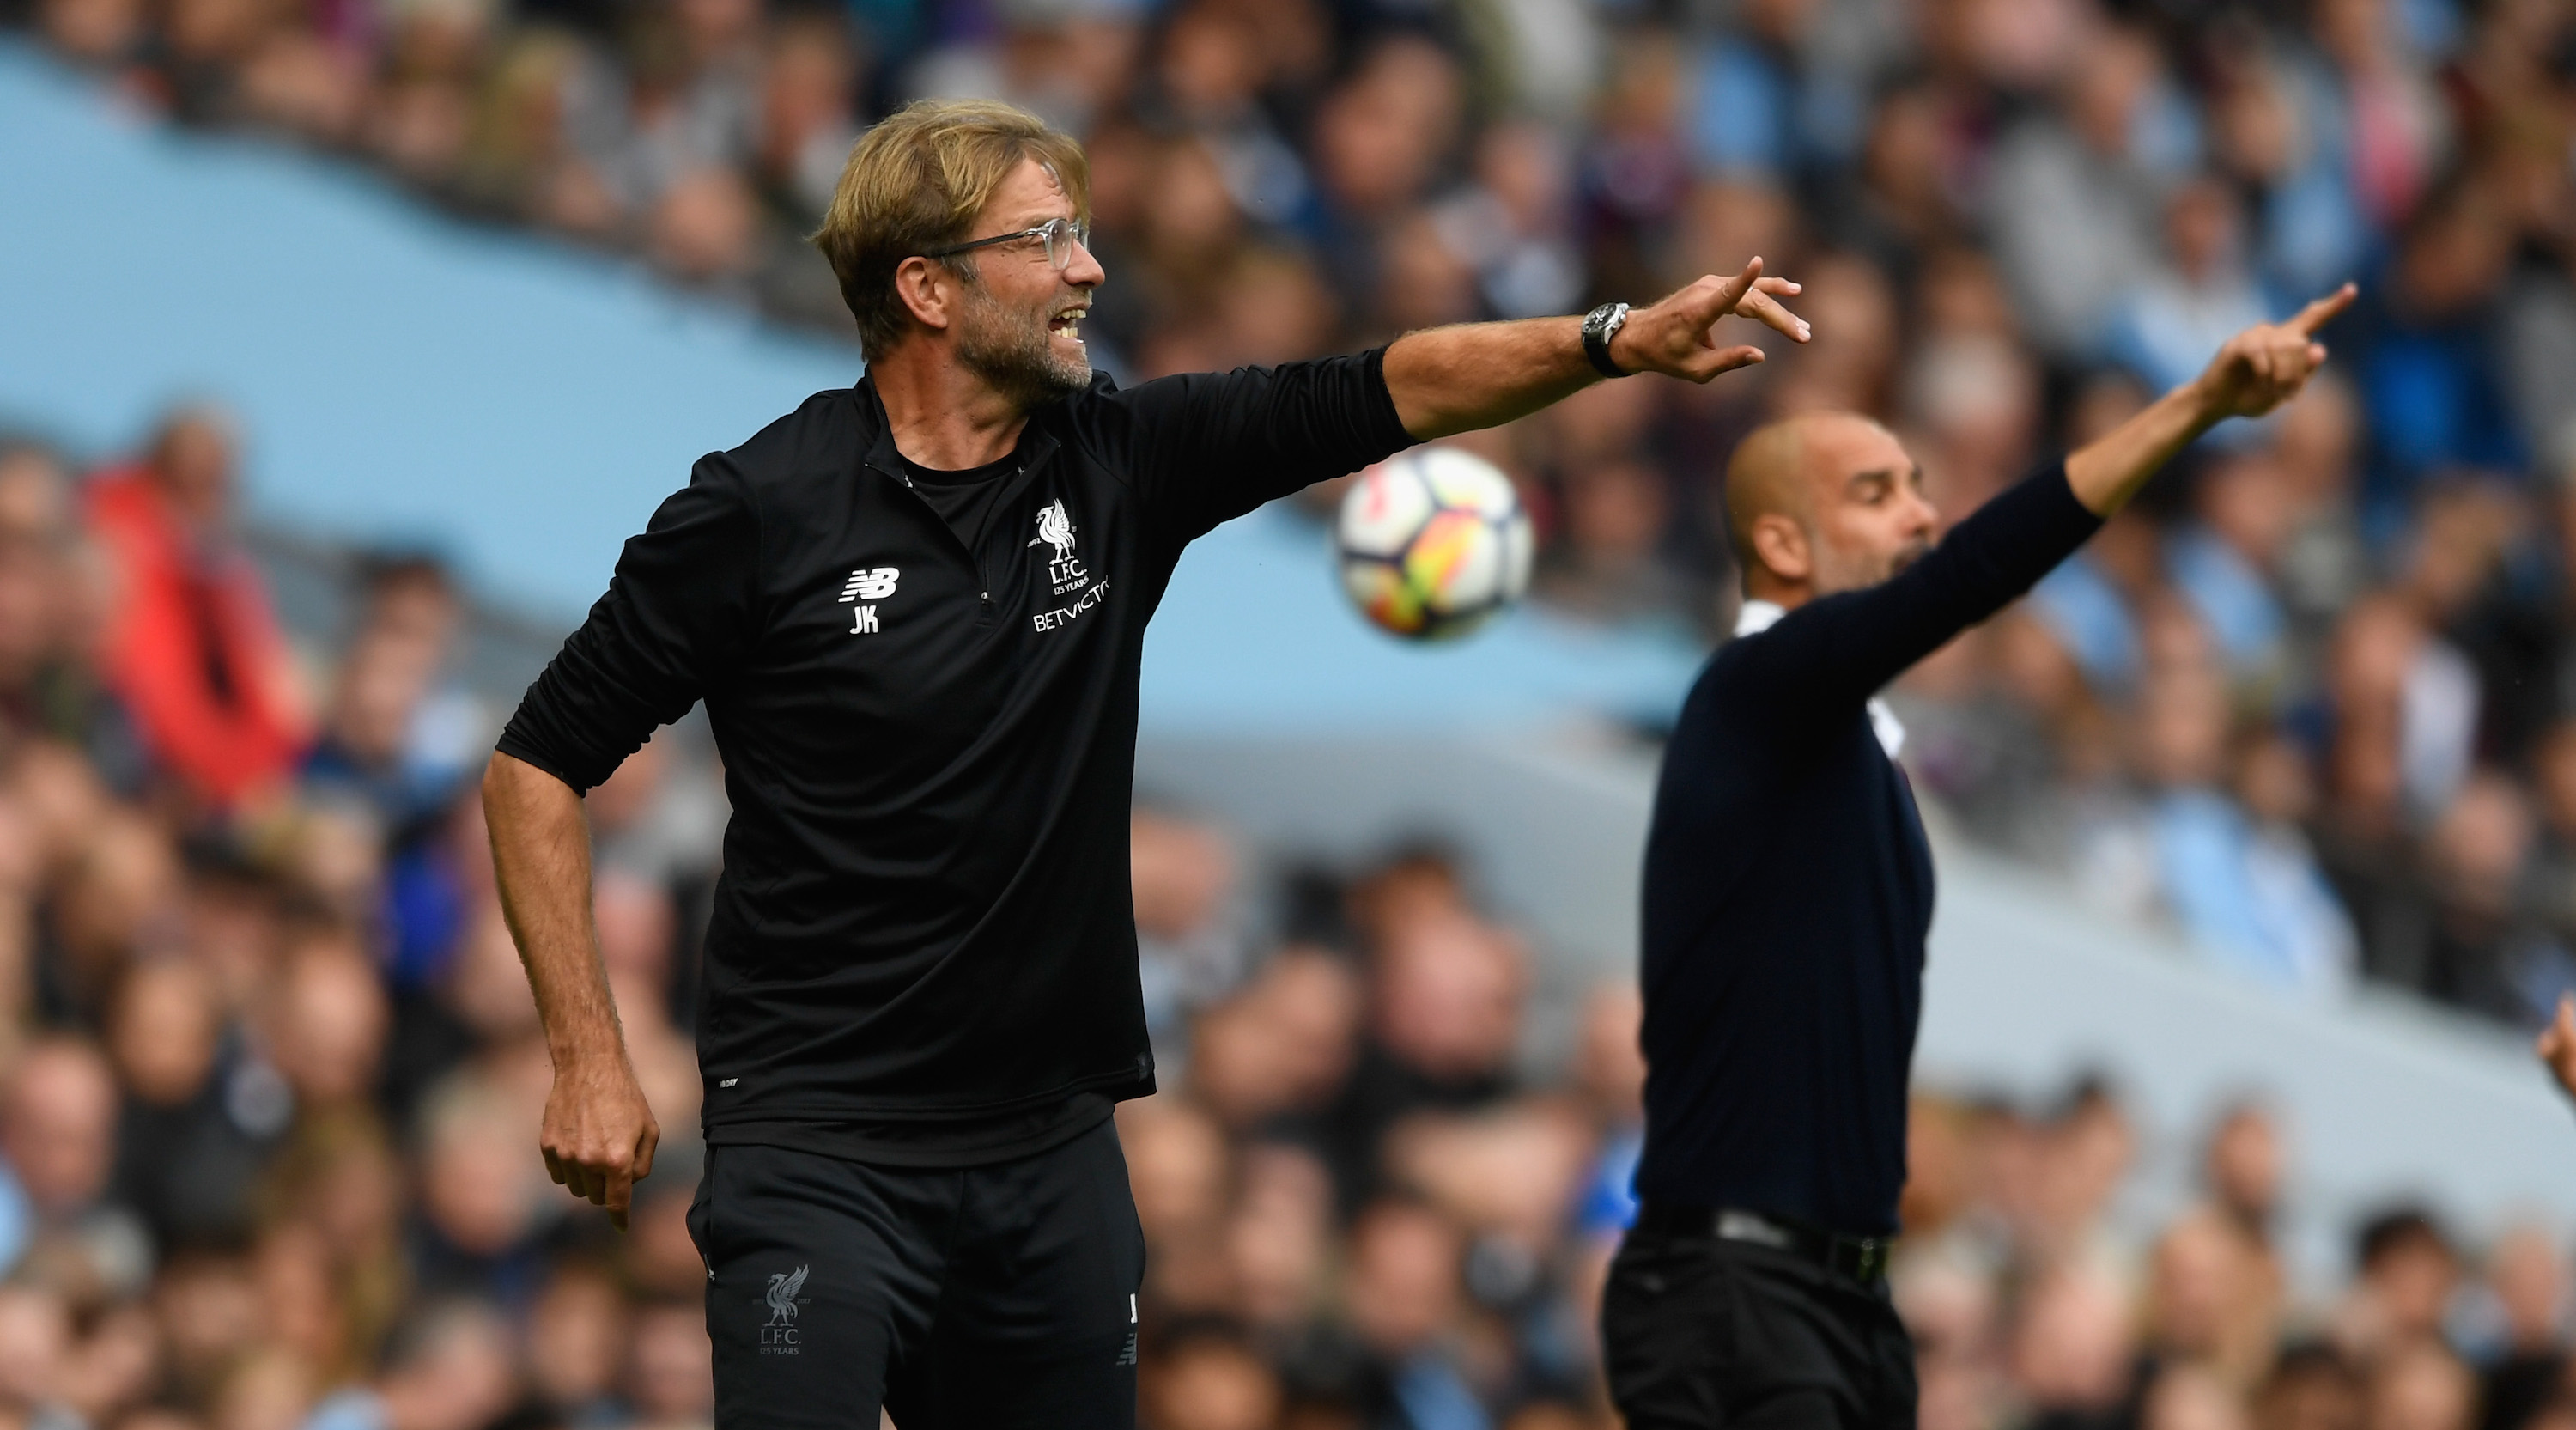 Liverpool manager Jurgen Klopp (l) and Pep Guardiola react during the Premier League match between Manchester City and Liverpool at Etihad Stadium on September 9, 2017 in Manchester, England. (Photo by Stu Forster/Getty Images)